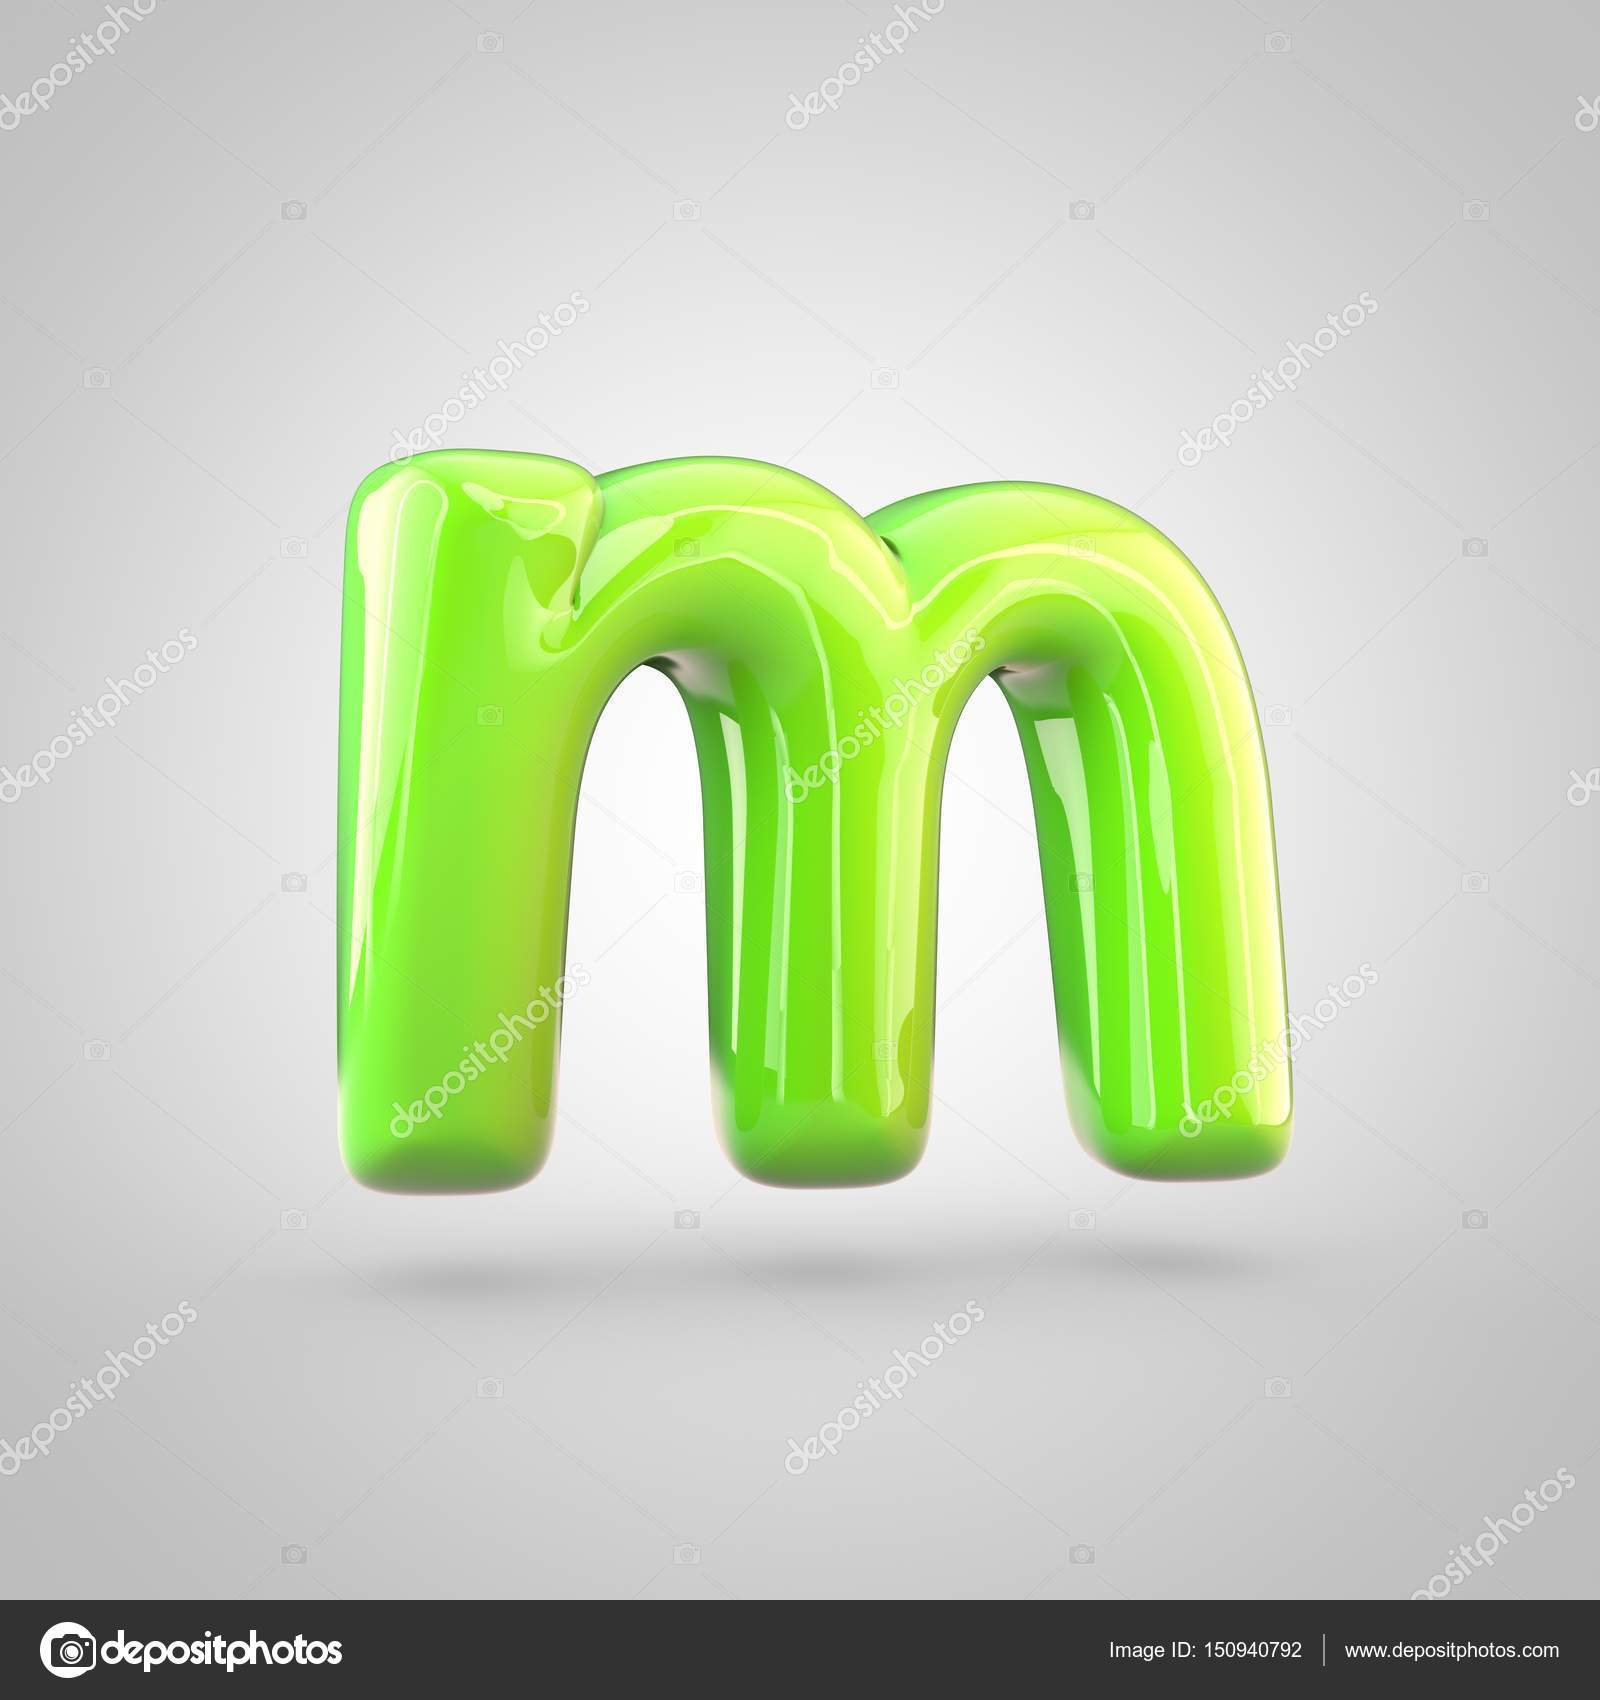 glossy lime paint alphabet letter m lowercase 3d render of bubble twisted font with glint and ring light reflections isolated on white background